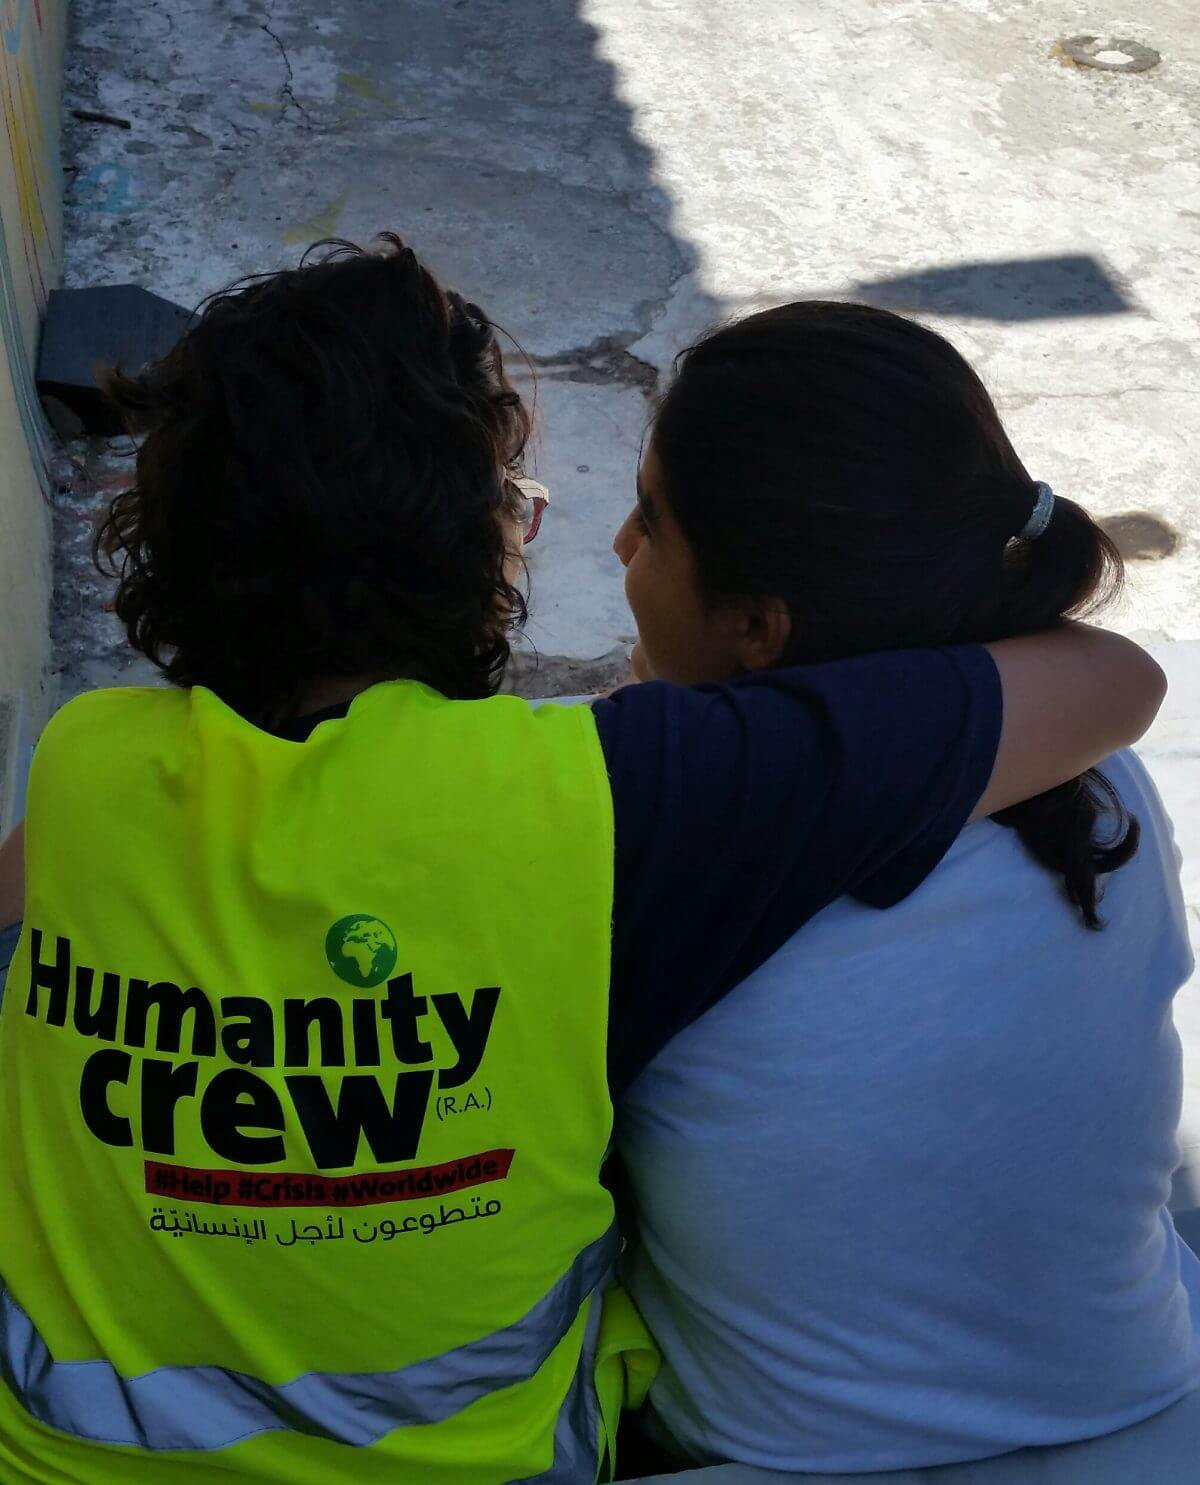 Palestinian Humanity Crew members provide psycho social support for refugees in Greece. (Photo: Michaela Whitton)